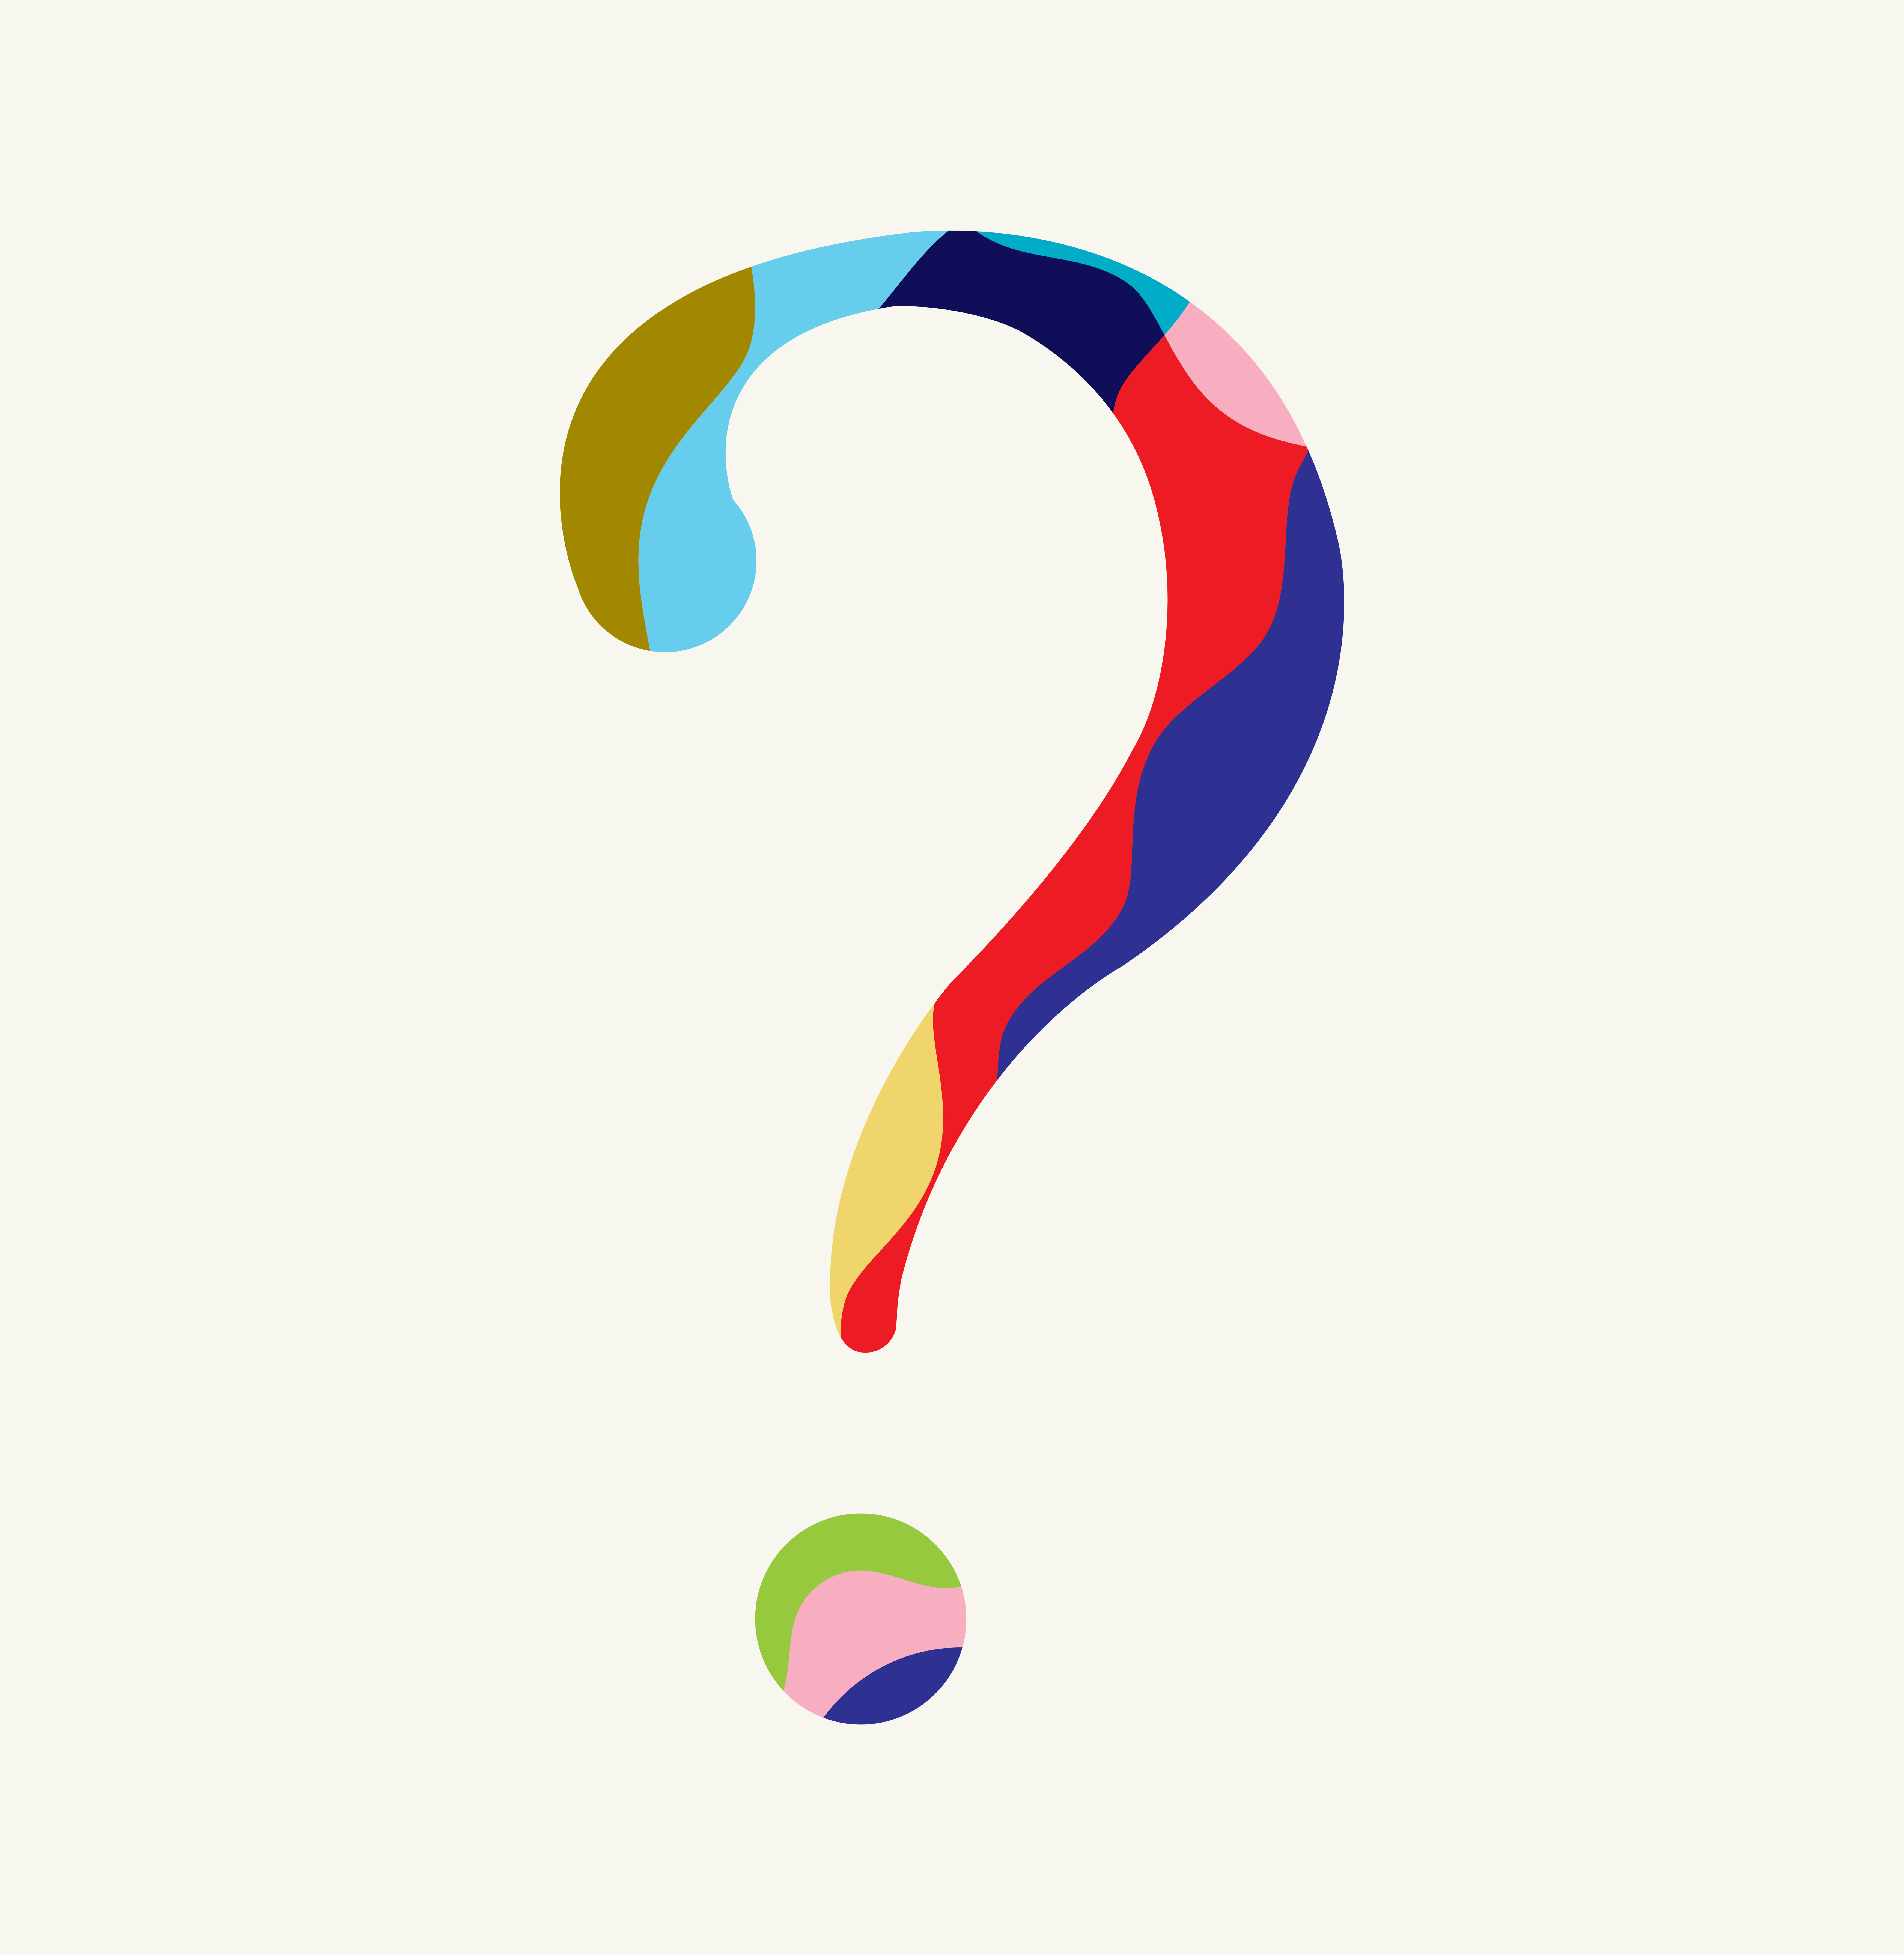 Colorful Question Mark, Geometric, FAQ, Quirky, Mystery, Modern, Contemporary, Vibrant, Style, Who, What, Why, When, Where, Pop, Media, Advertising, Analytics, Journalism, Report, Vector Illustration